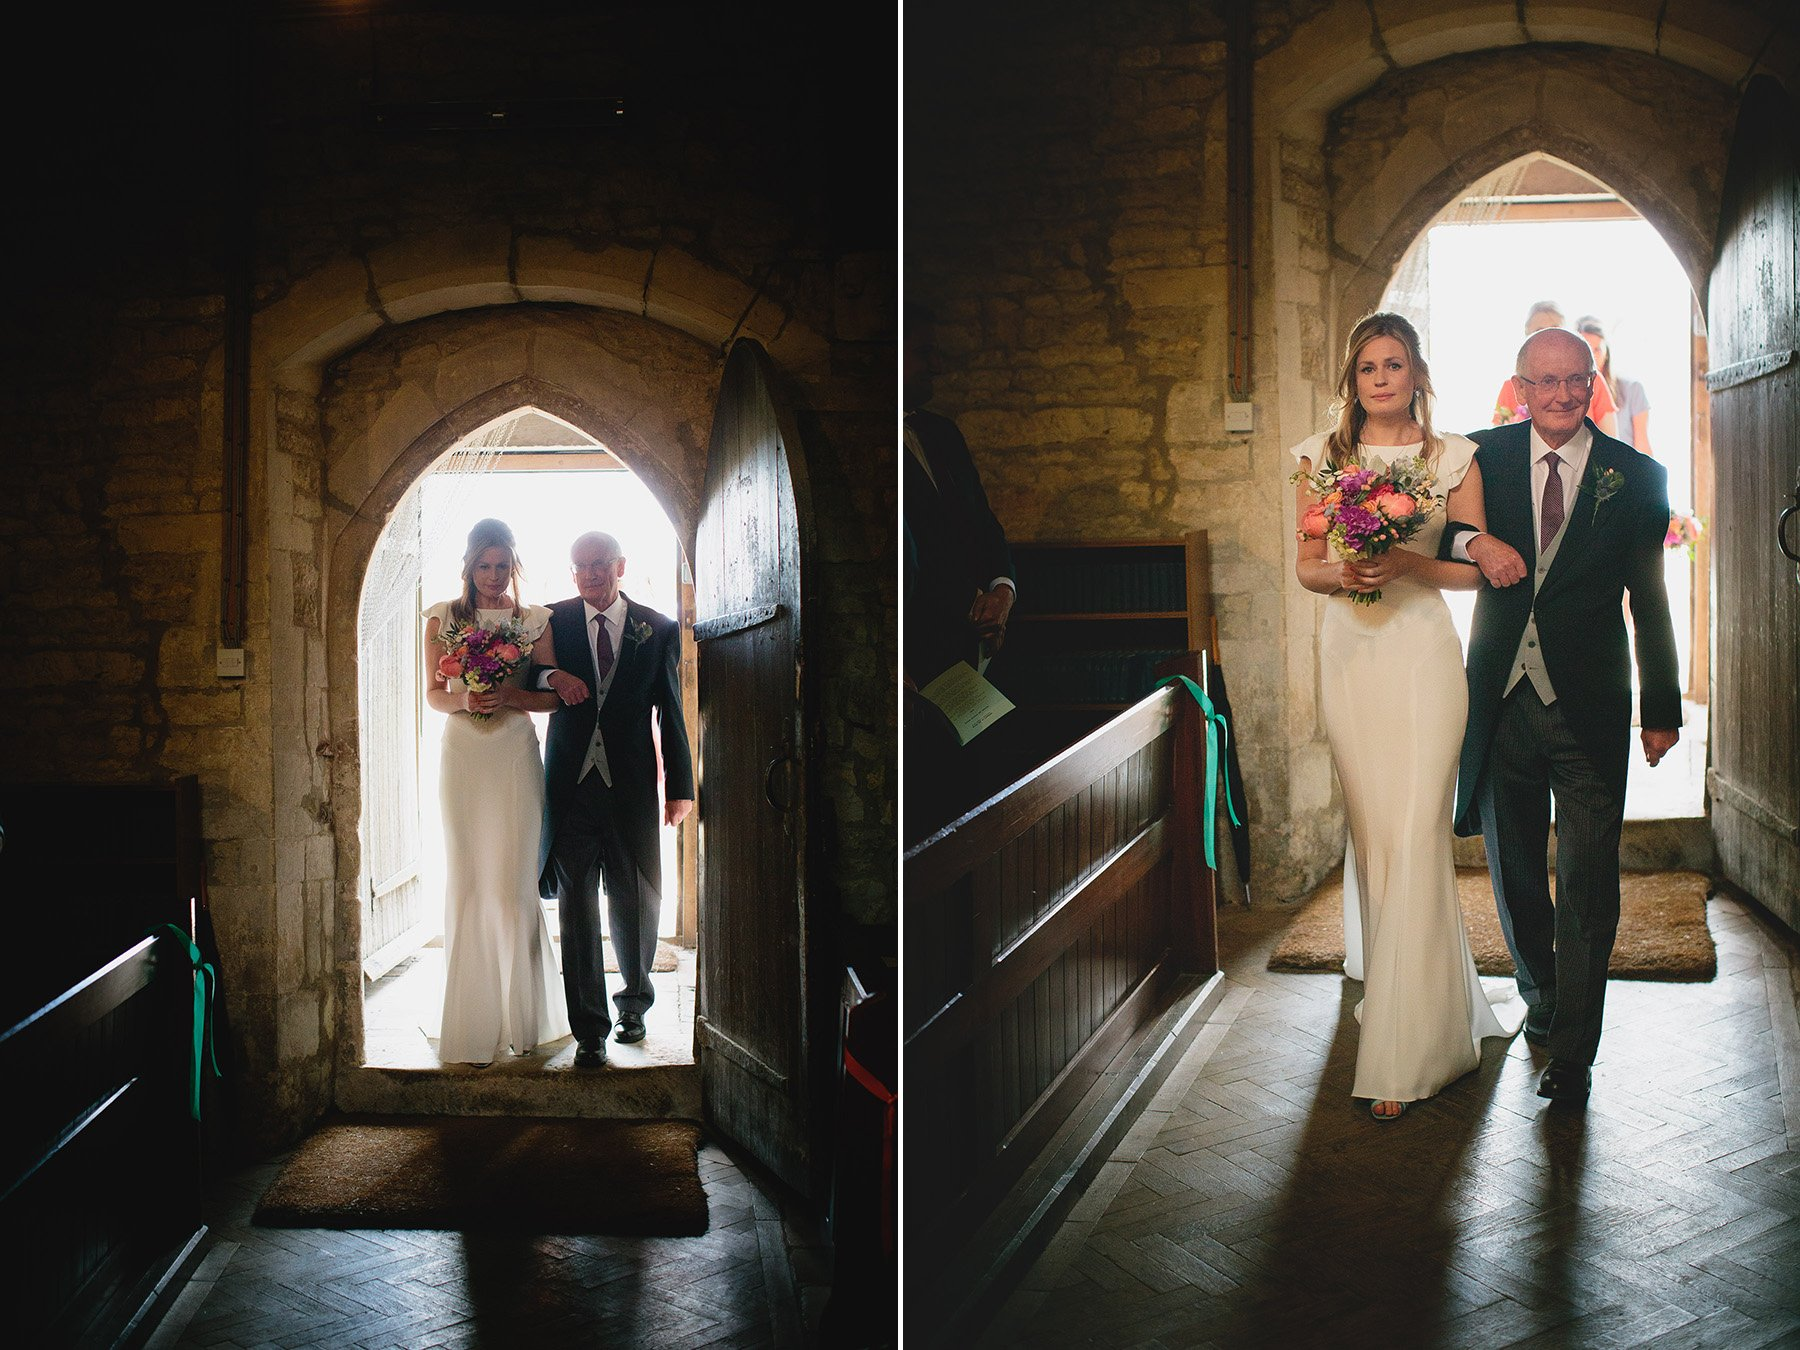 Buckinghamshire-Wedding-Lizzie-Duncan-061